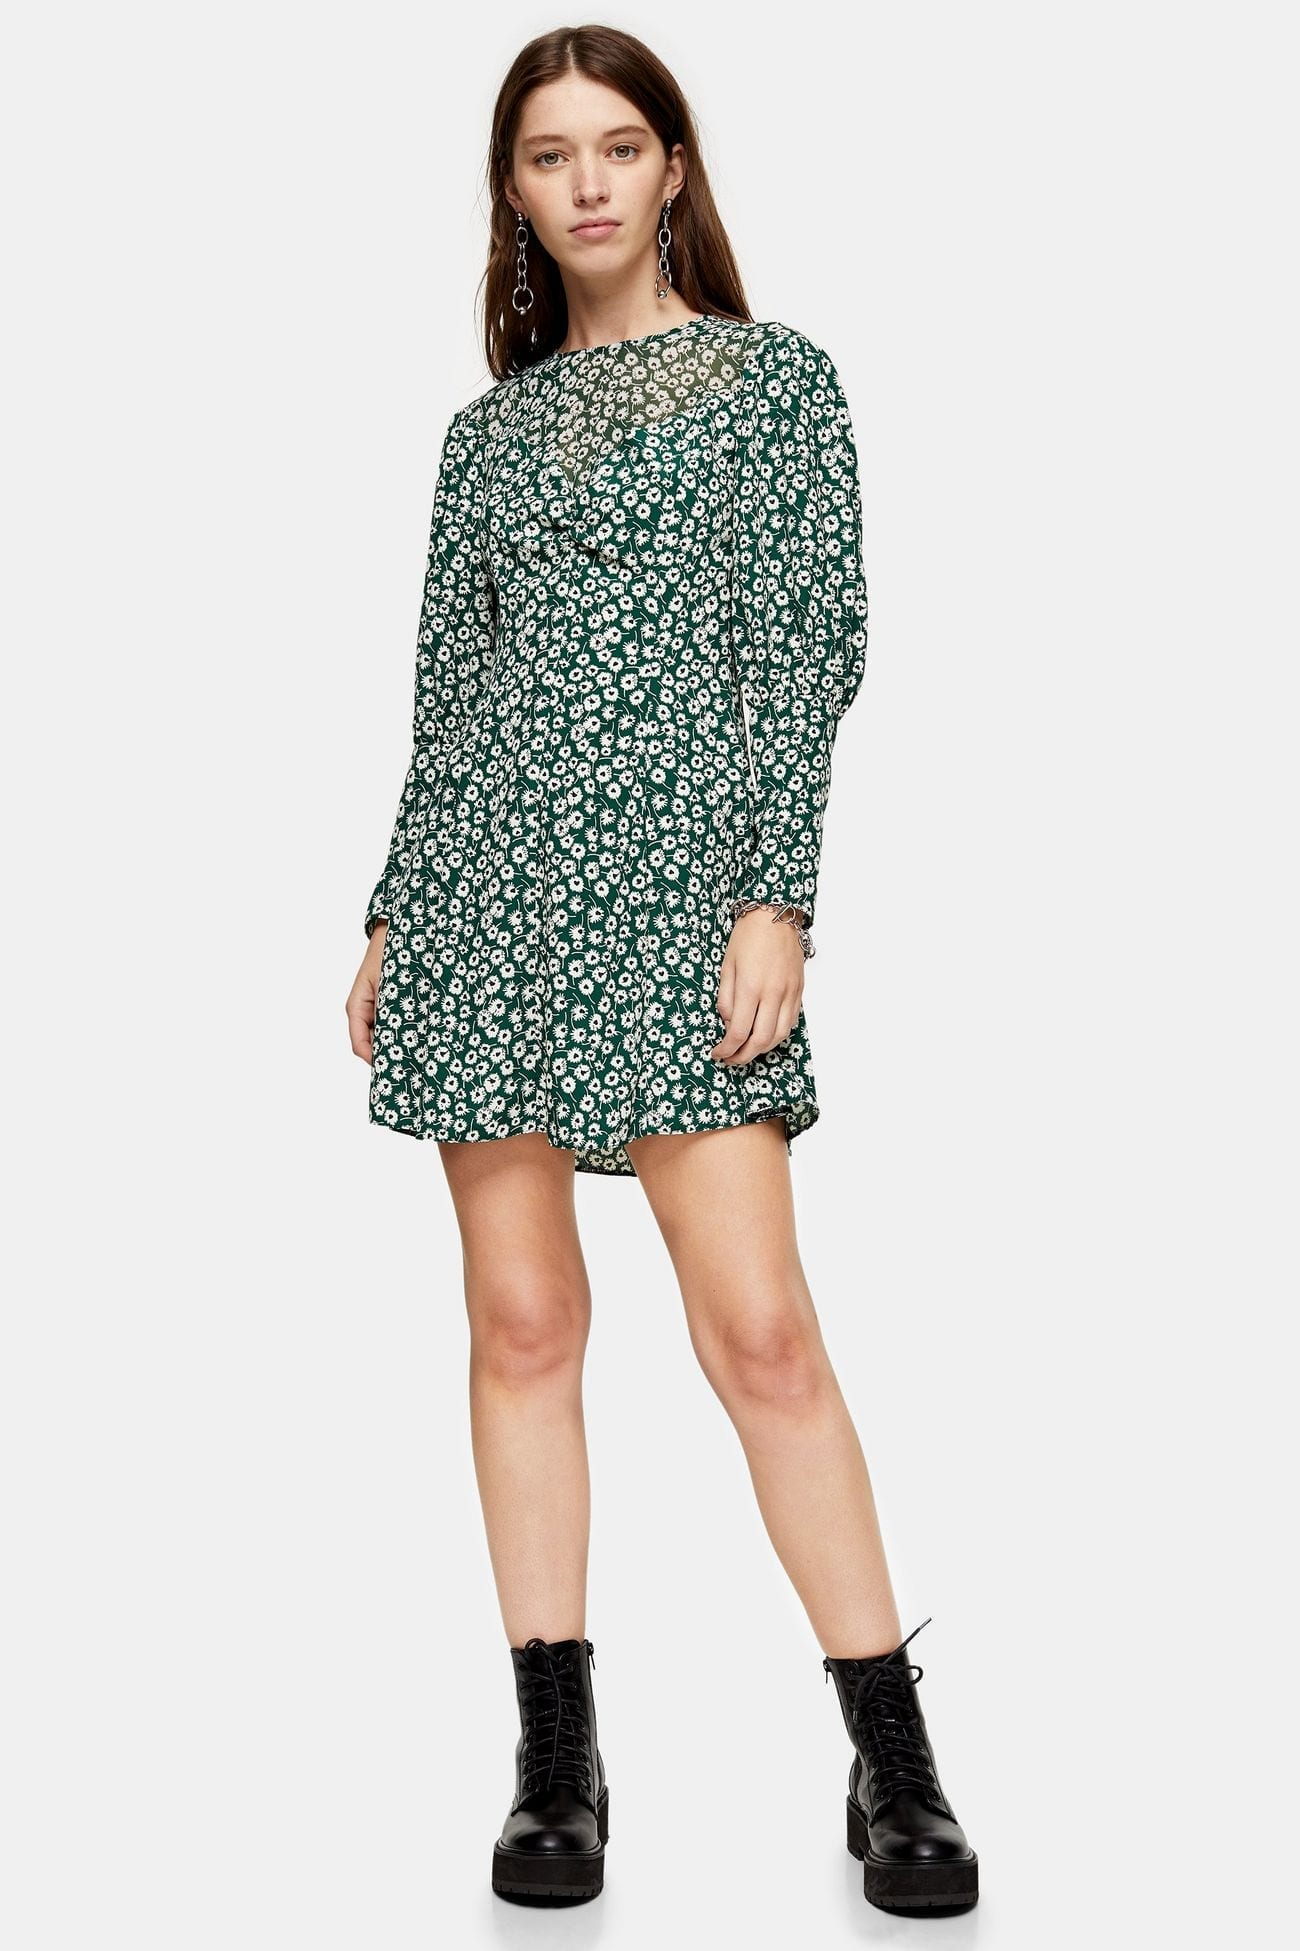 Topshop: Up to 60% off sale styles.